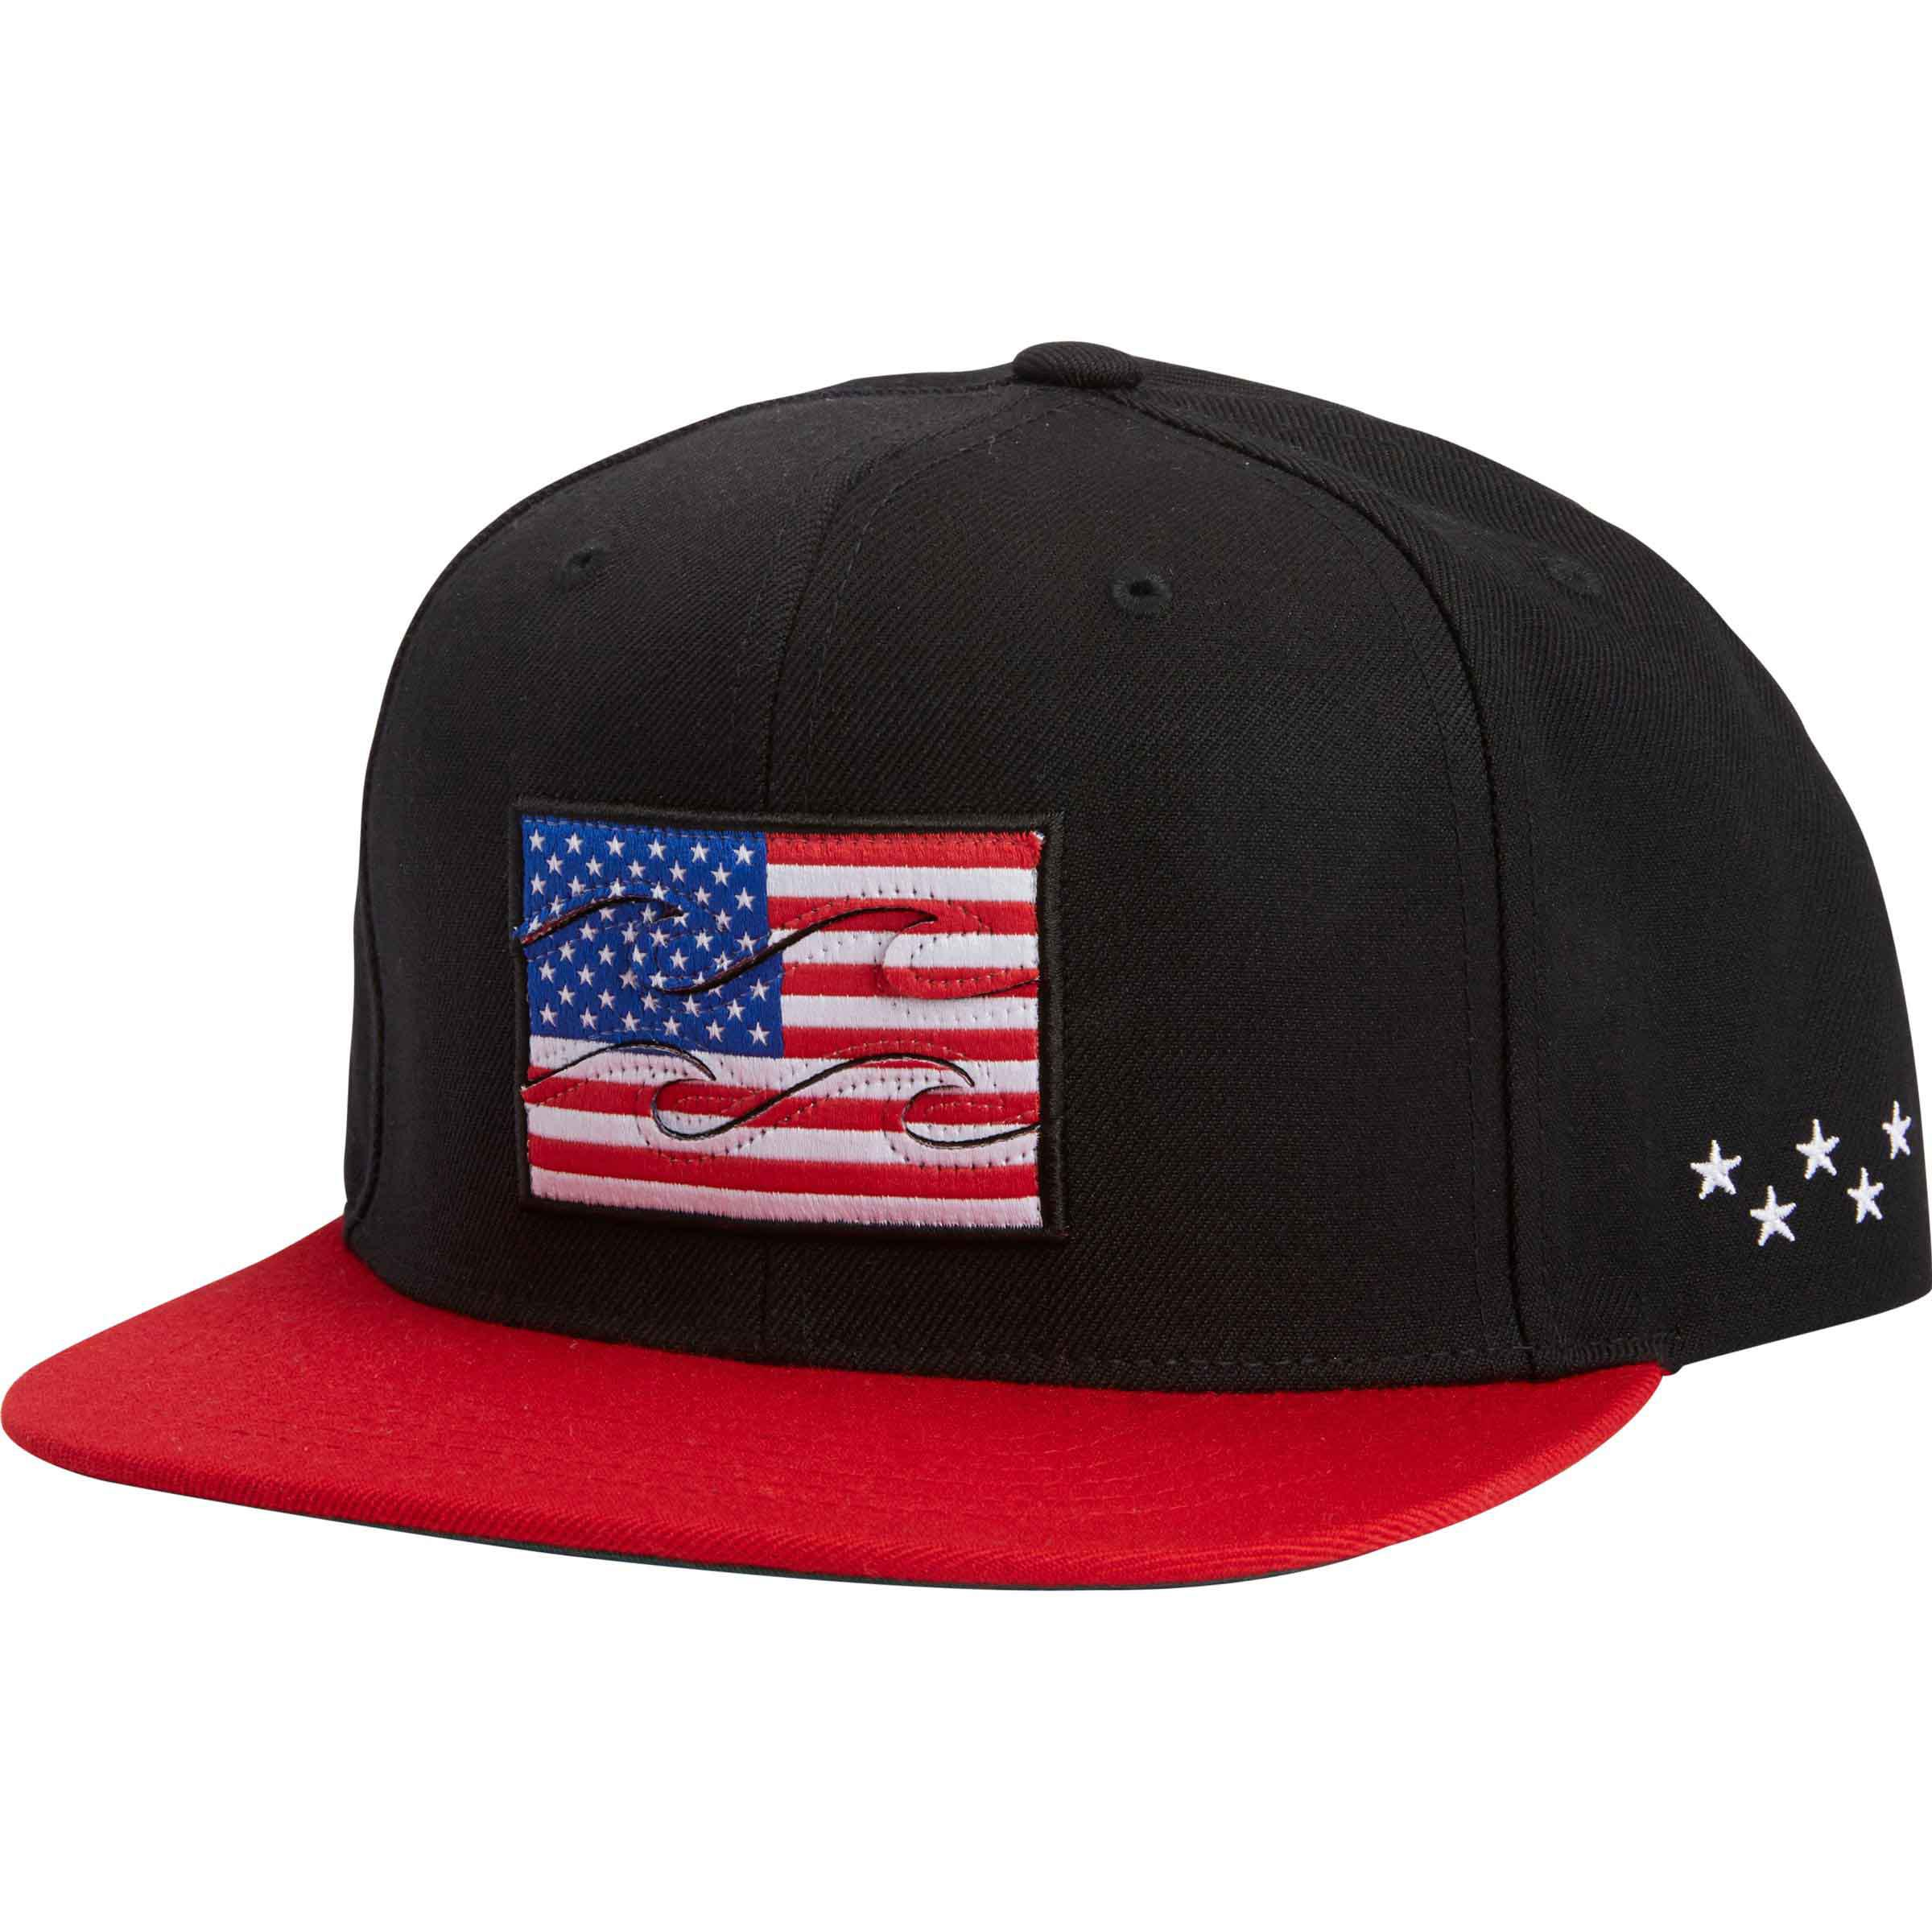 new styles c5161 1a9fc ... shopping lyst billabong native snapback hat in black for men 7ad3b 5097e